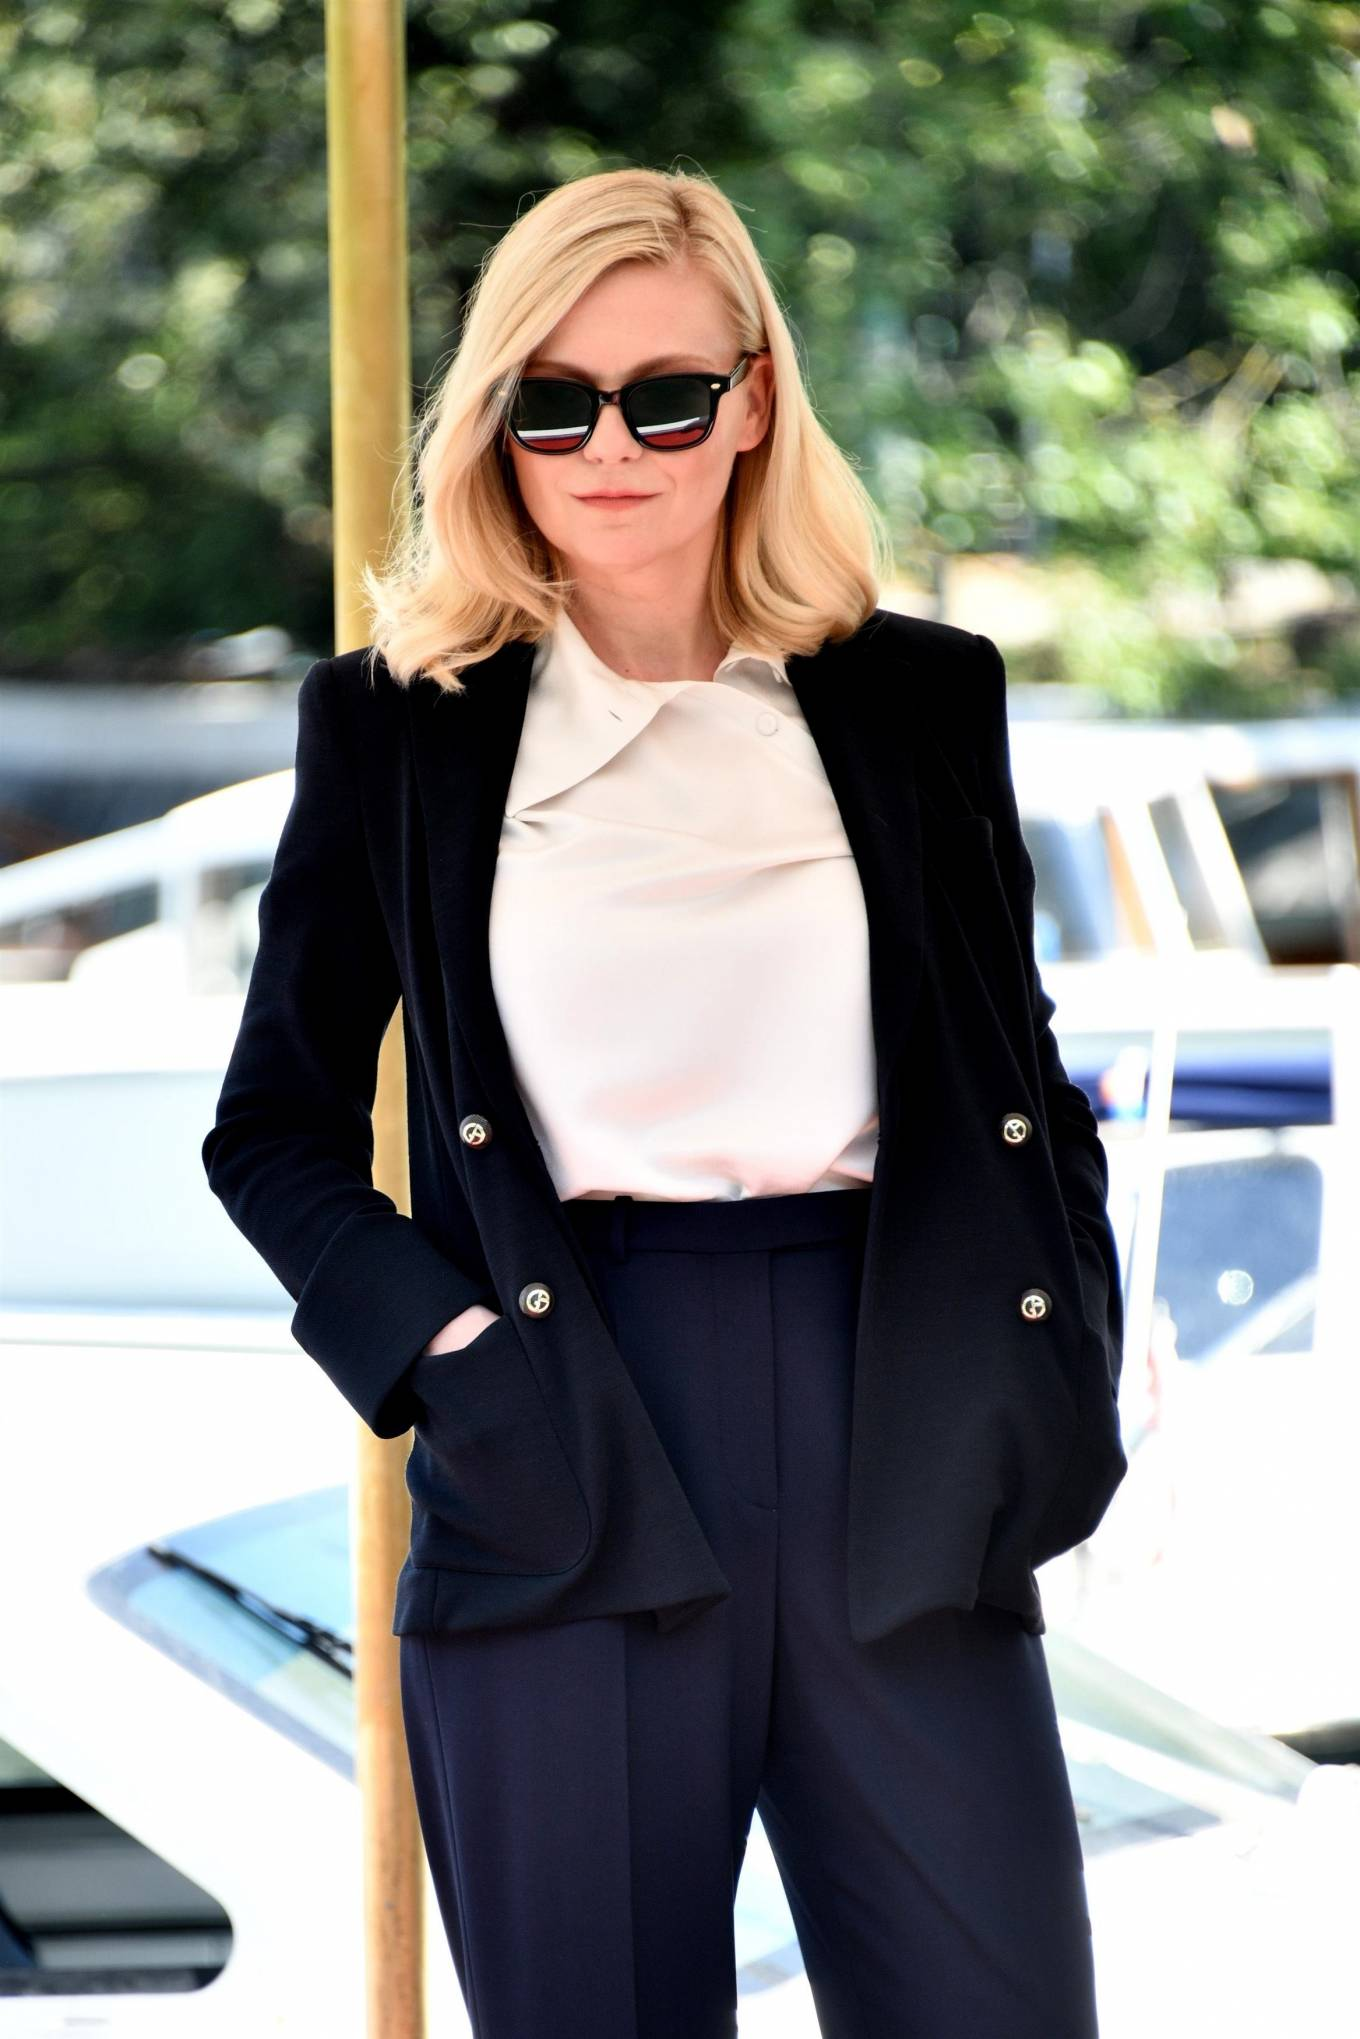 Kirsten Dunst - Pictured at hotel Excelsior in Venice